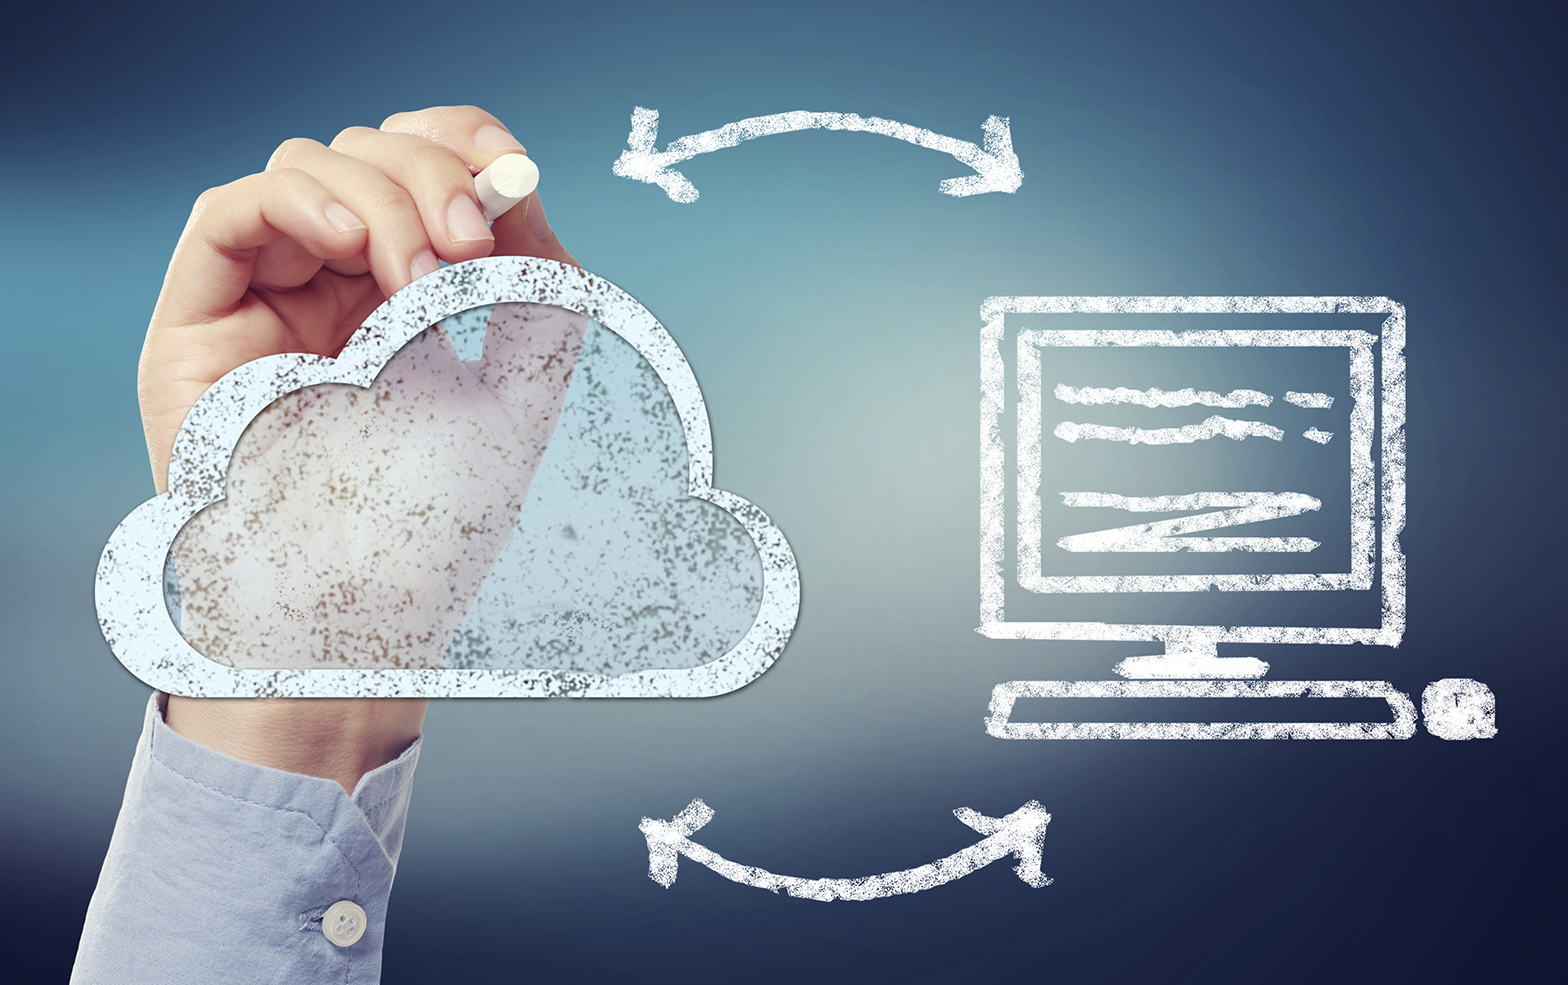 With the cloud comes a side effect: Cost overrun